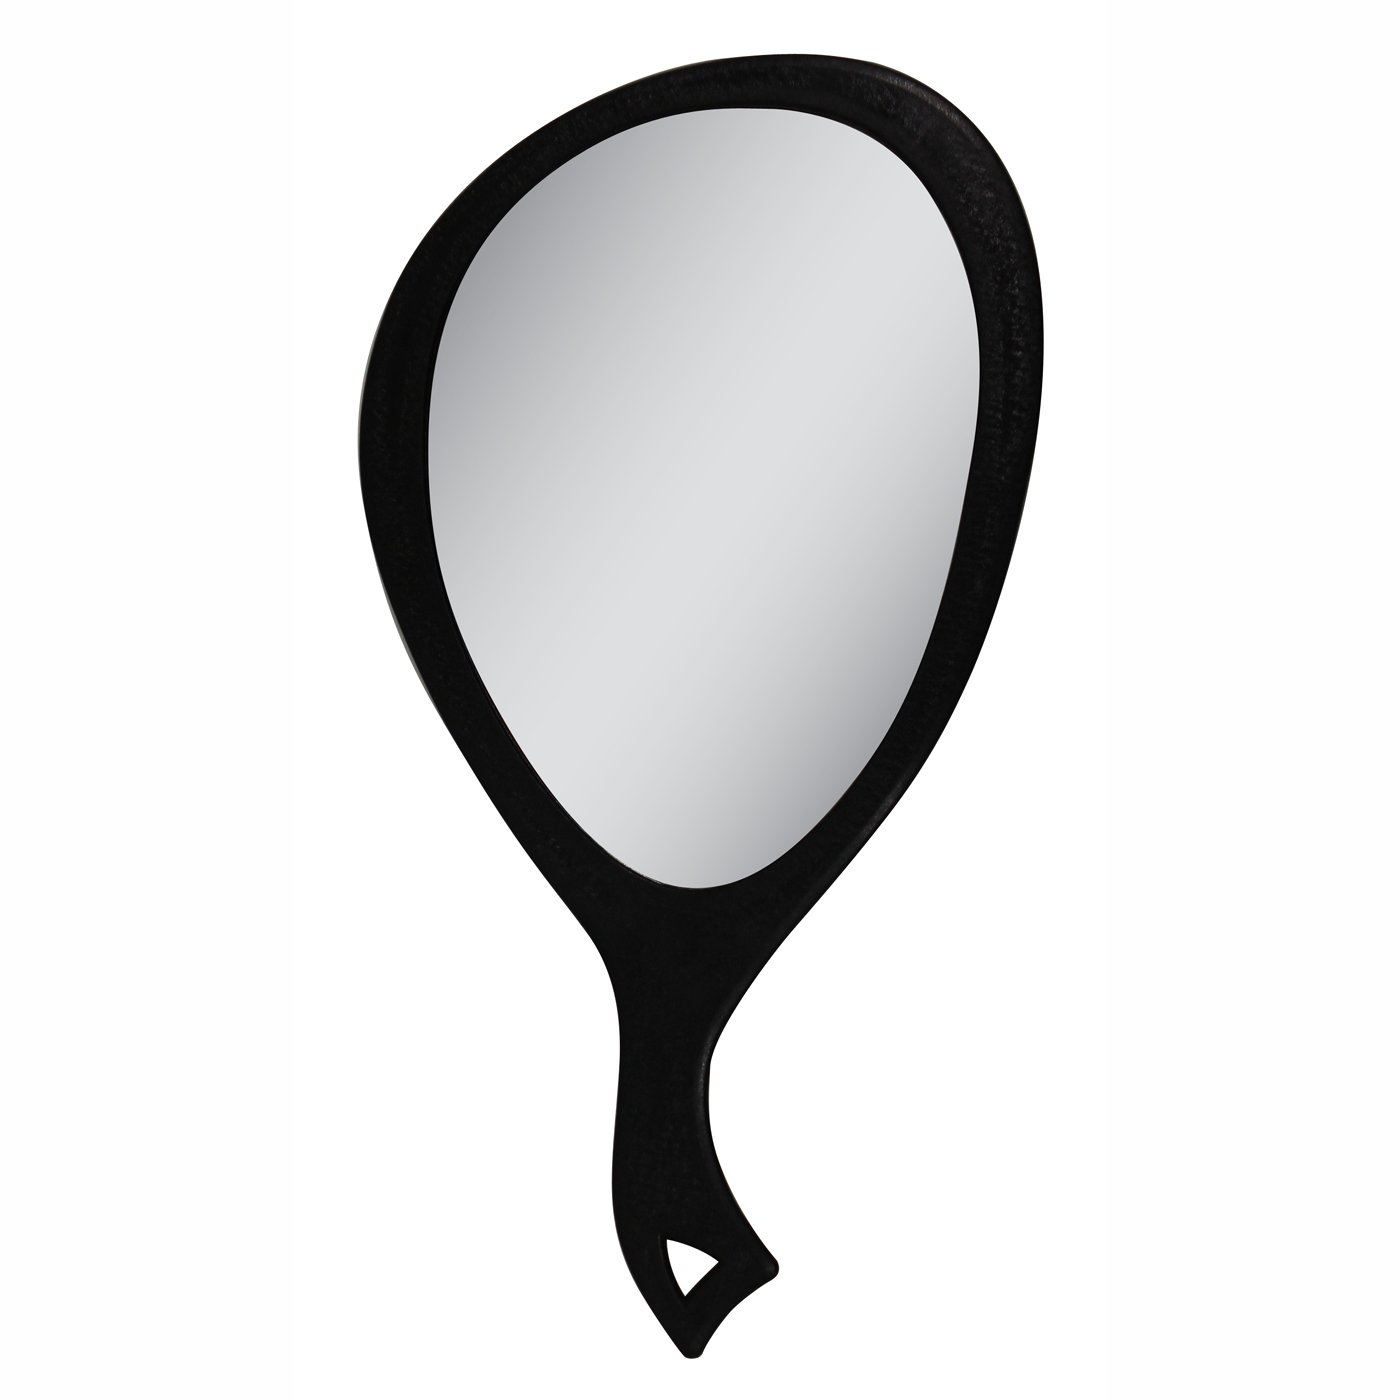 Hand Mirror Clipart - Clipart Suggest